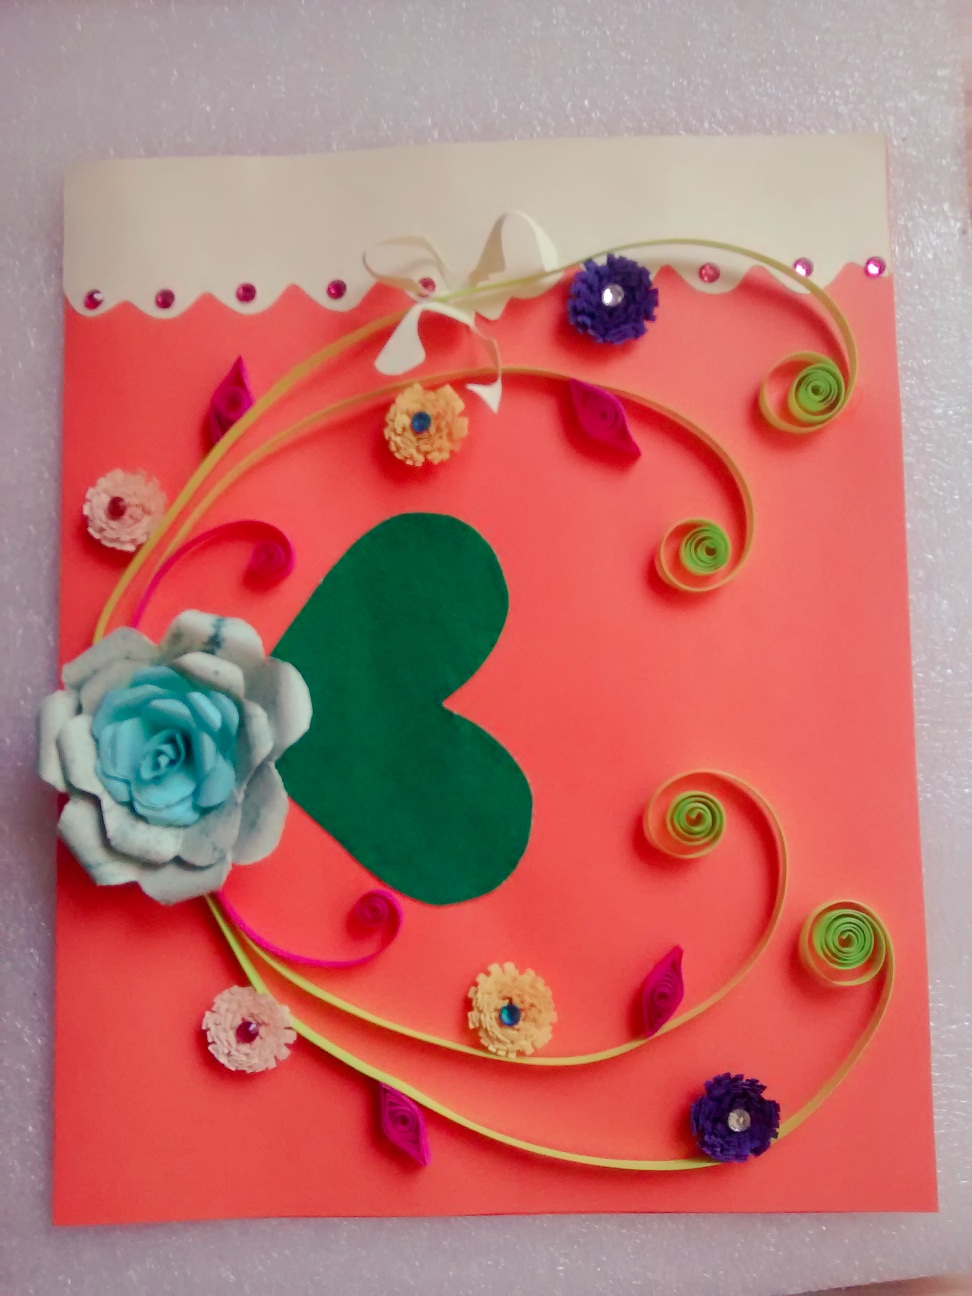 Creative greetings personalized greeting cards for all occasions personalized greeting cards for all occasions m4hsunfo